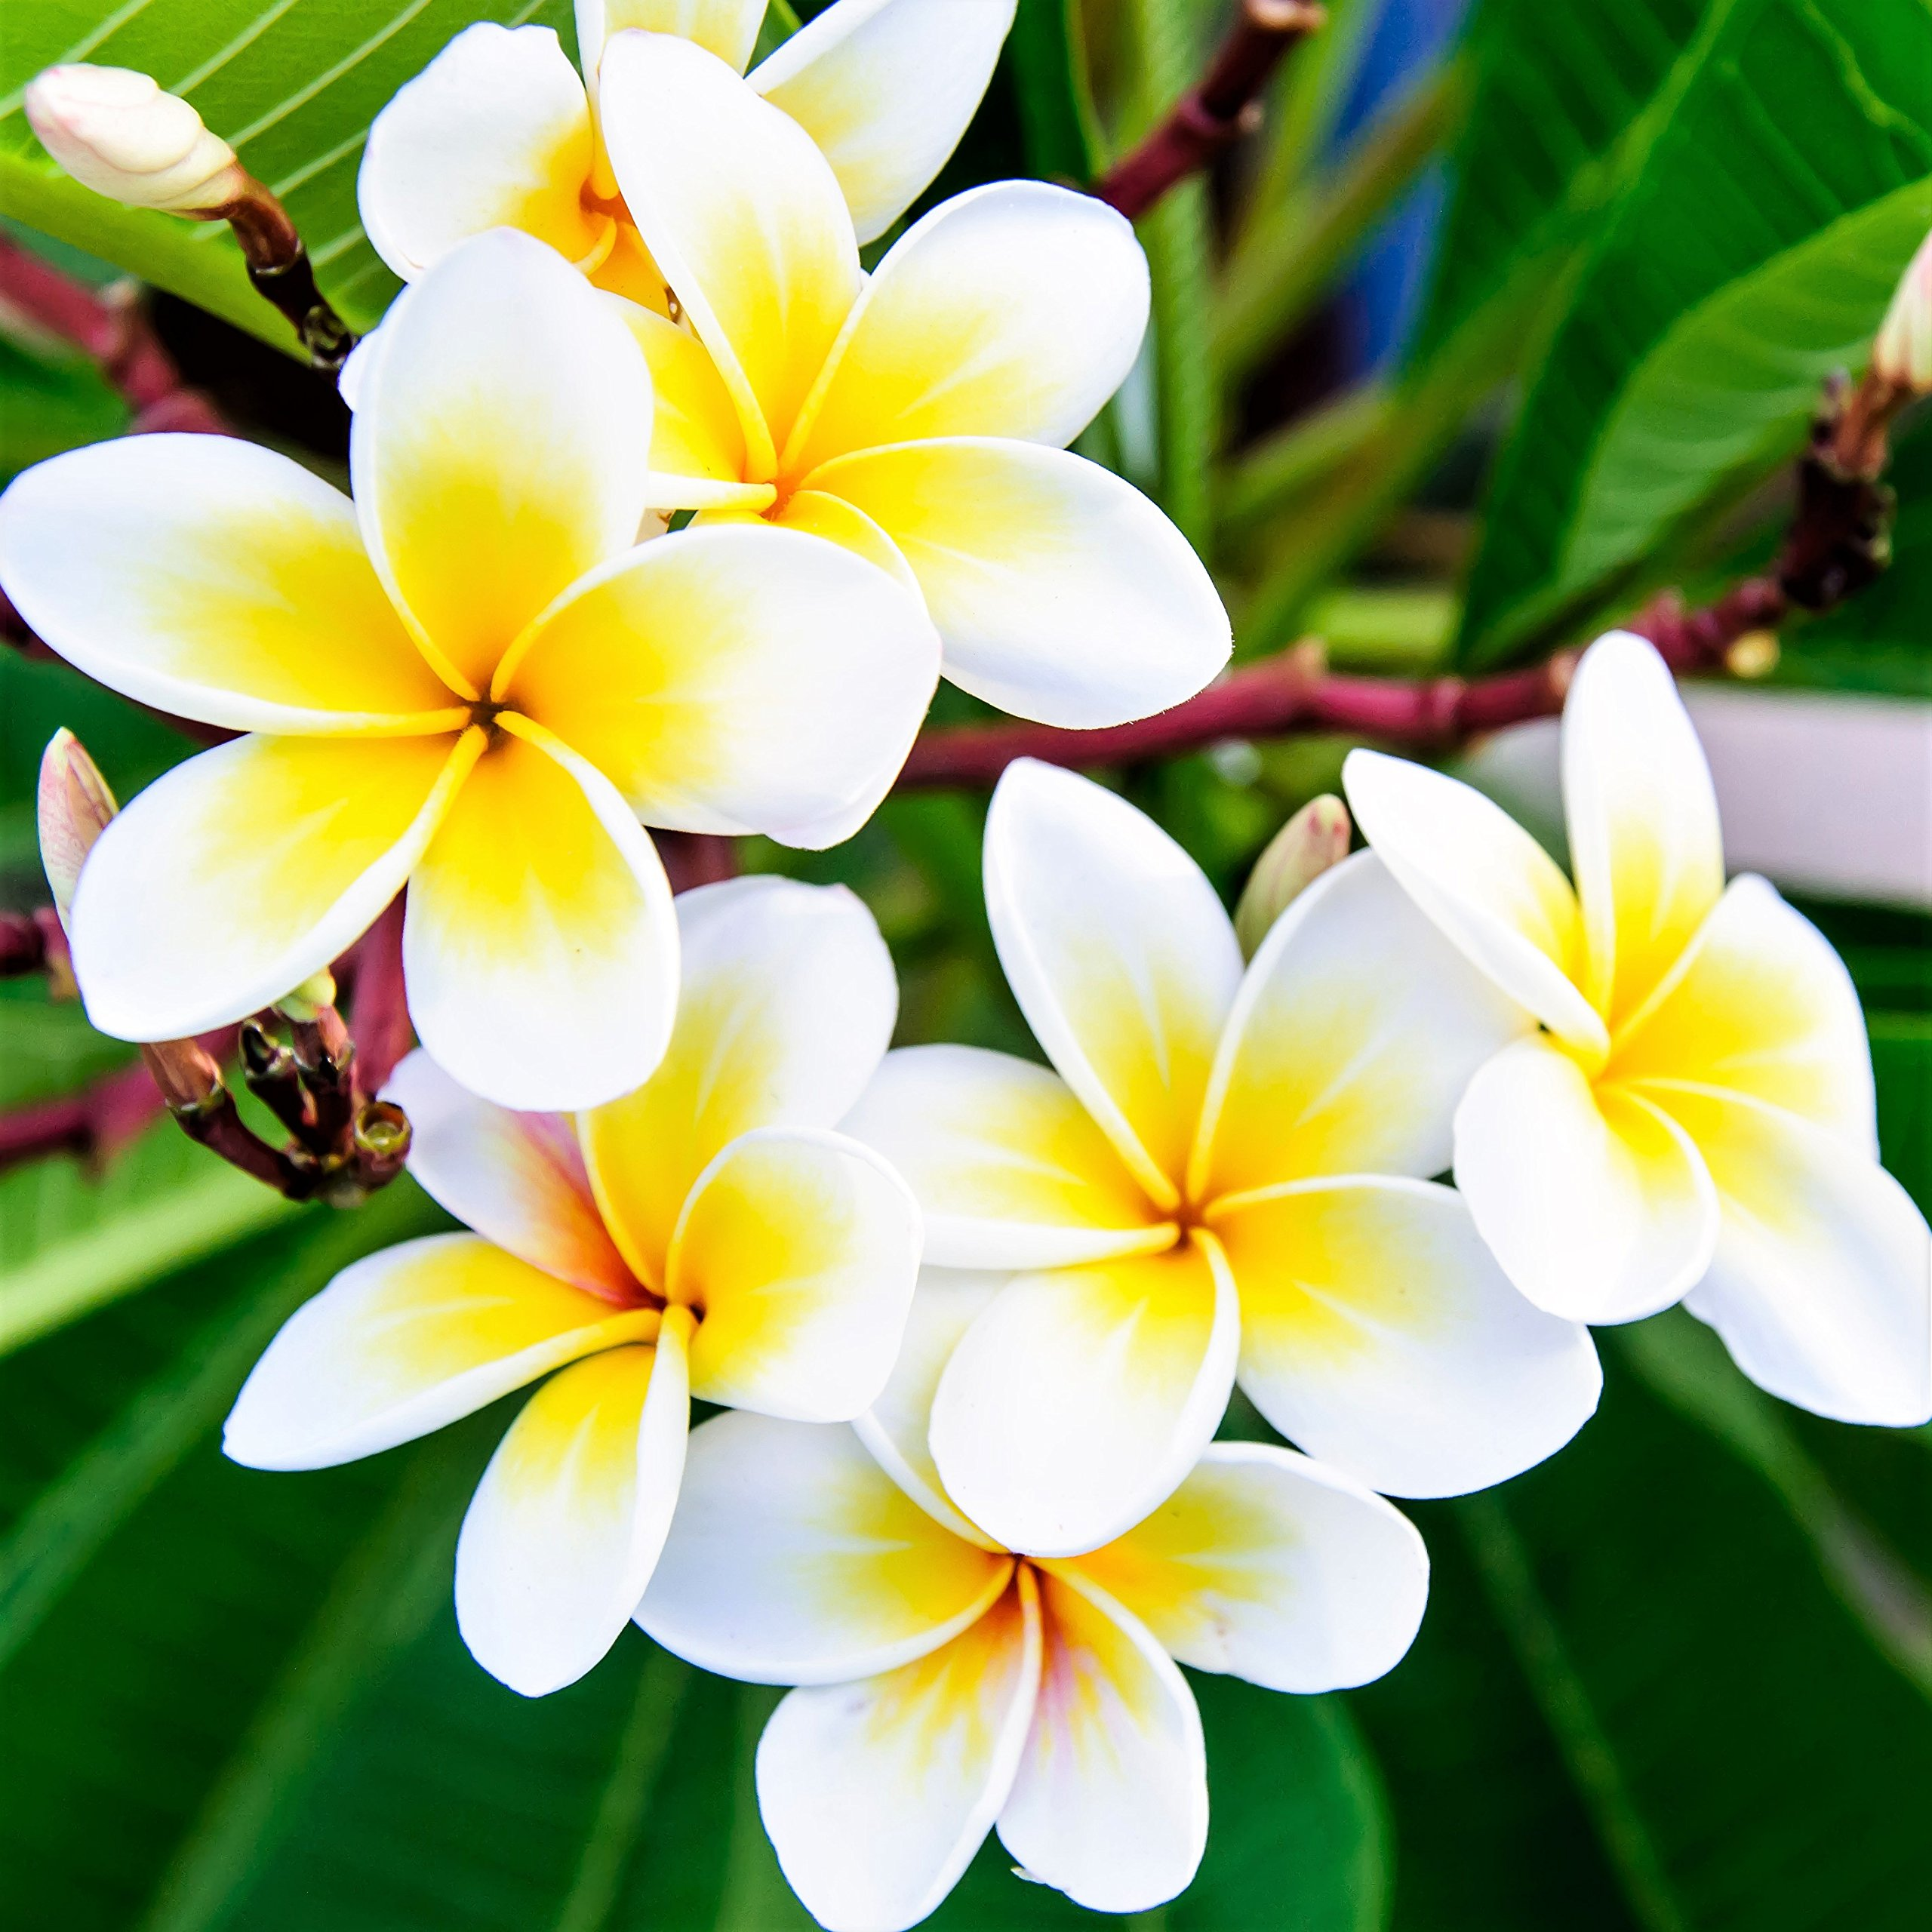 Plumeria - Select Yellows & Whites Plants - Not Just Cuttings. Fragrant Blooms This Summer. Stout 12''-14'' well-rooted plant | Ships From Easy to Grow TM by Easy to Grow